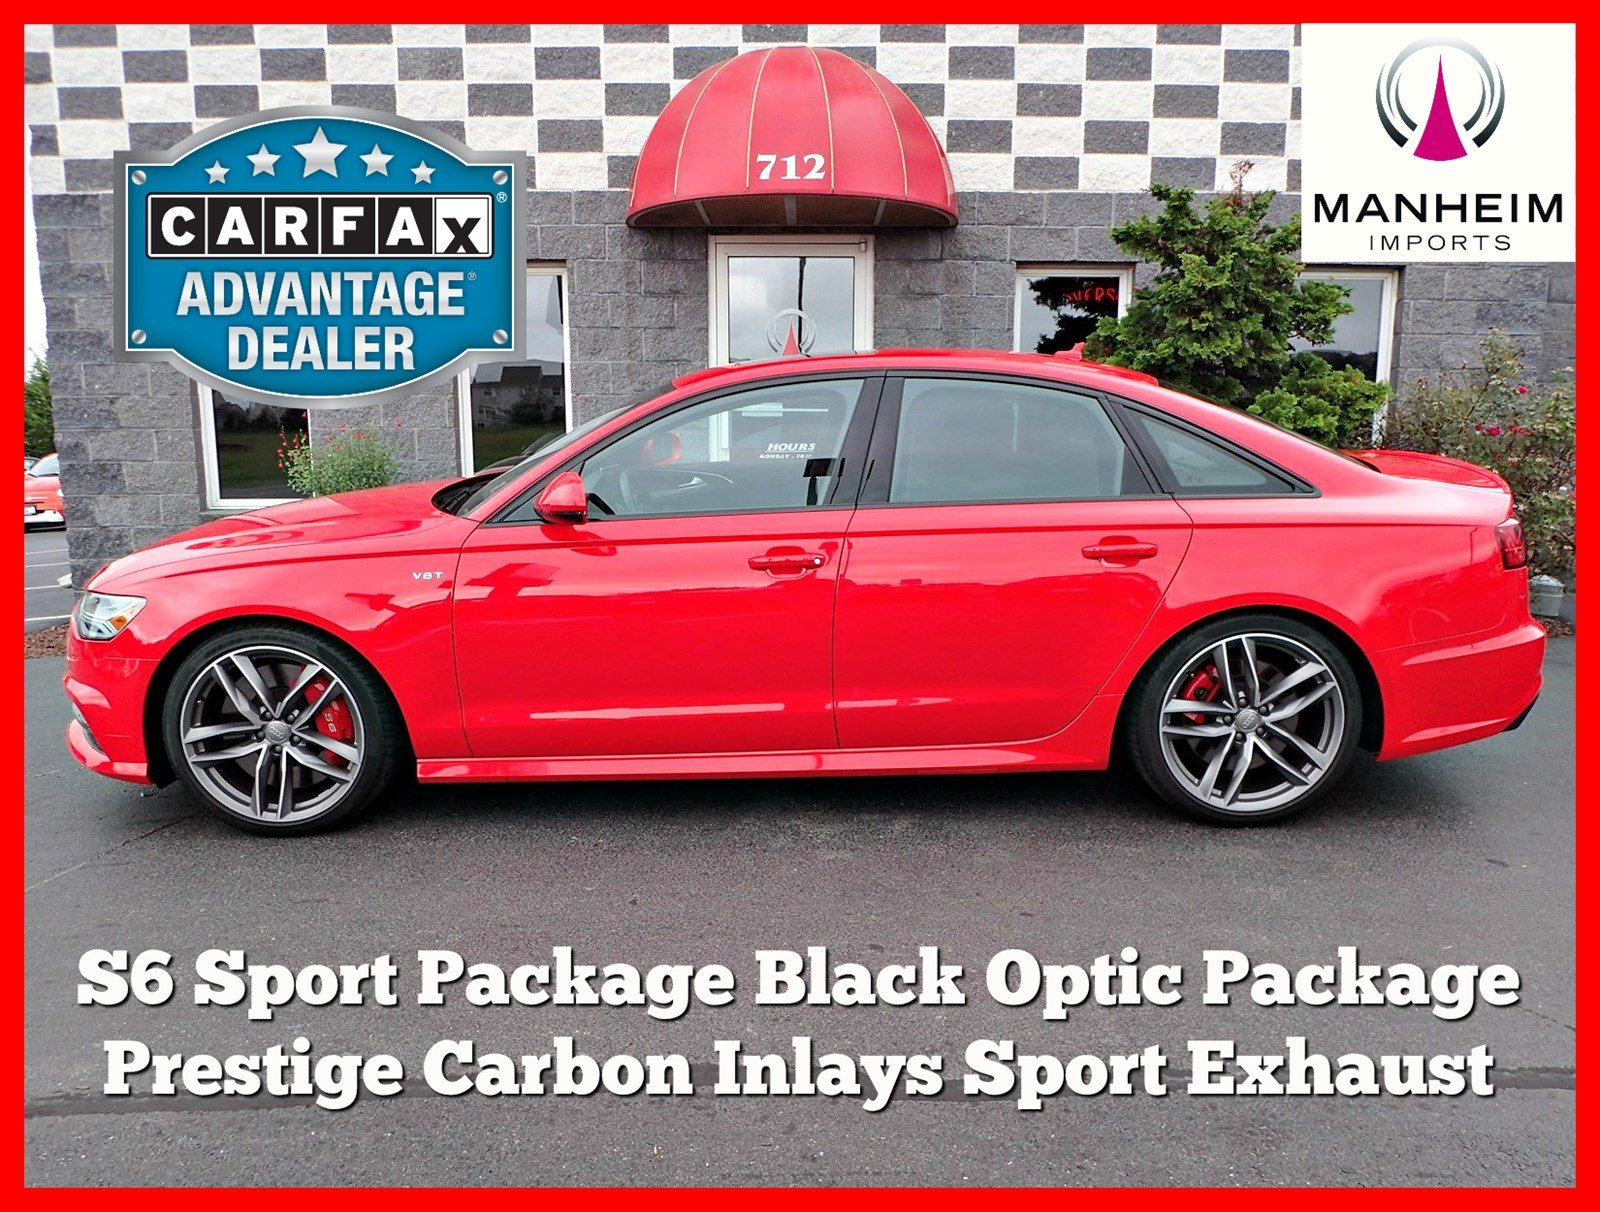 Pre Owned 2017 Audi S6 Prestige Sport Black Optic 4dr Car in Manheim